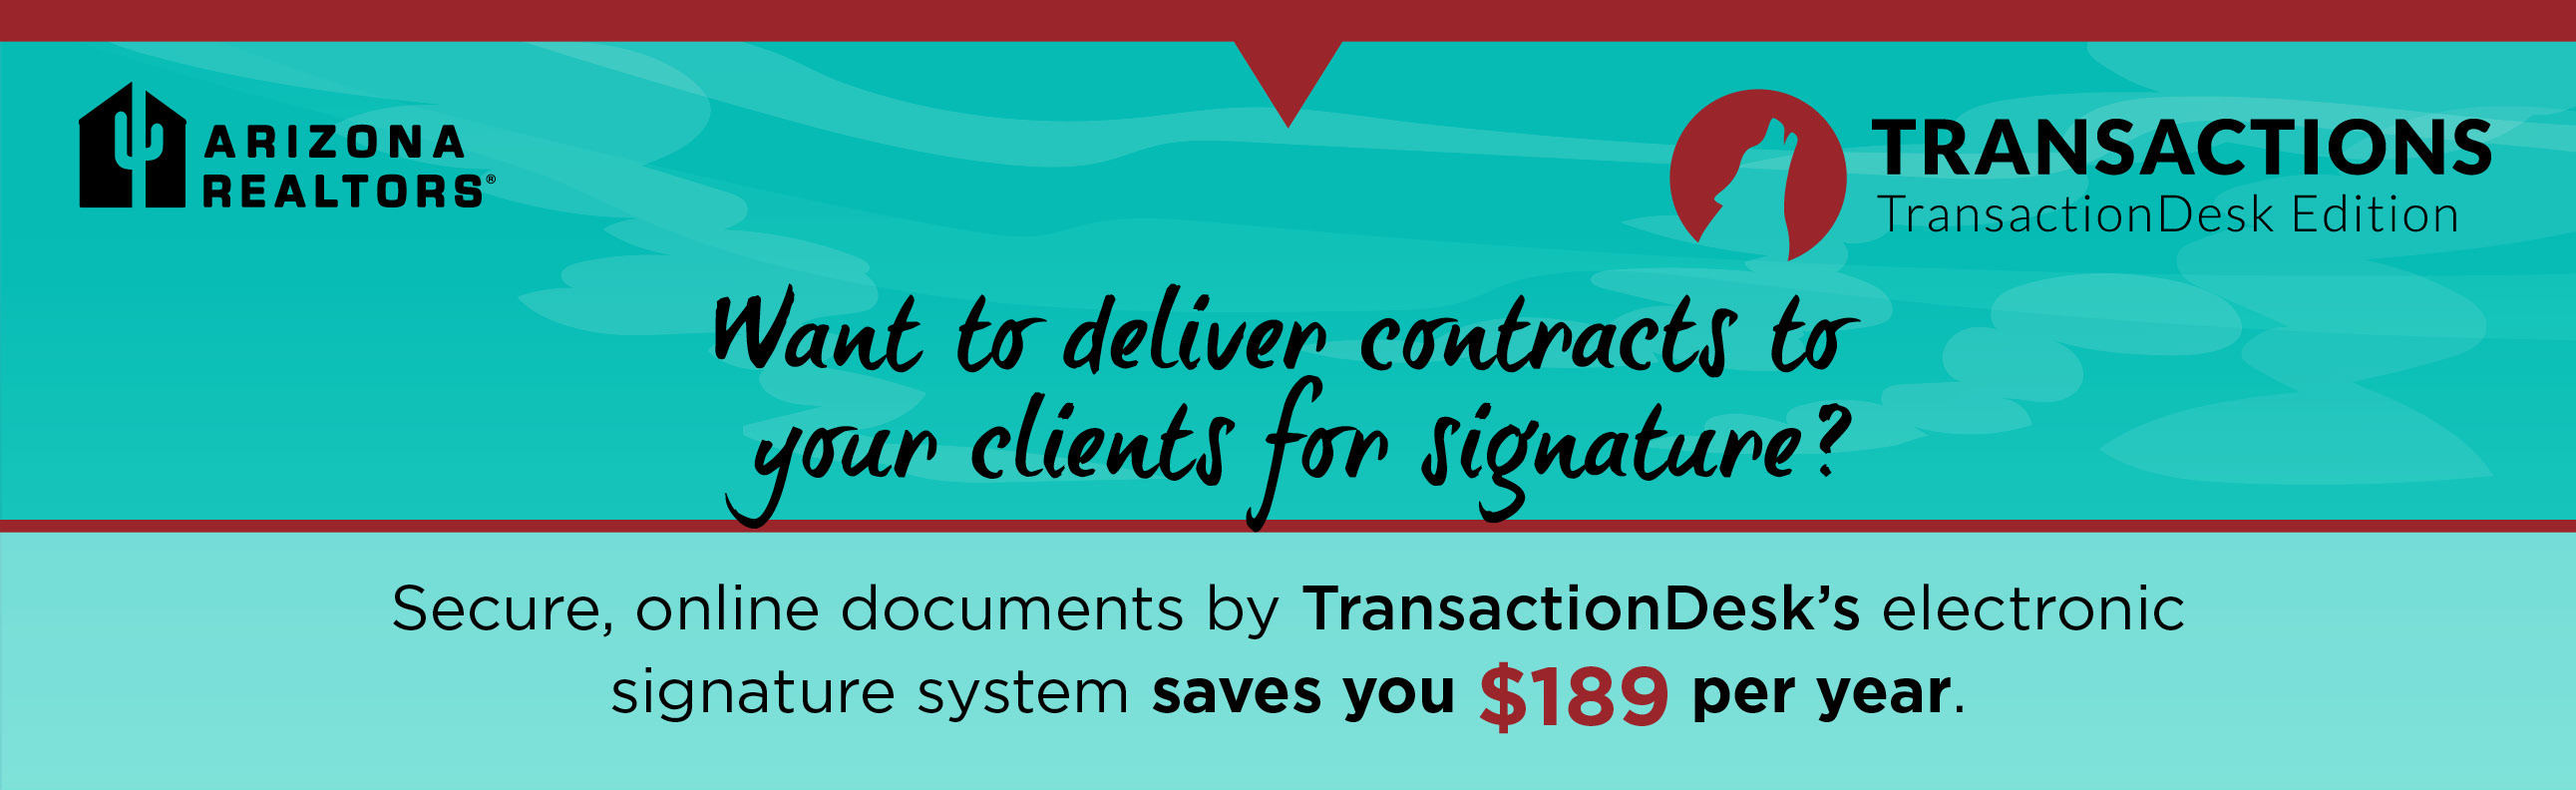 Secure, online documents by TransactionDesk's electronic signature system saves you $189 per year.